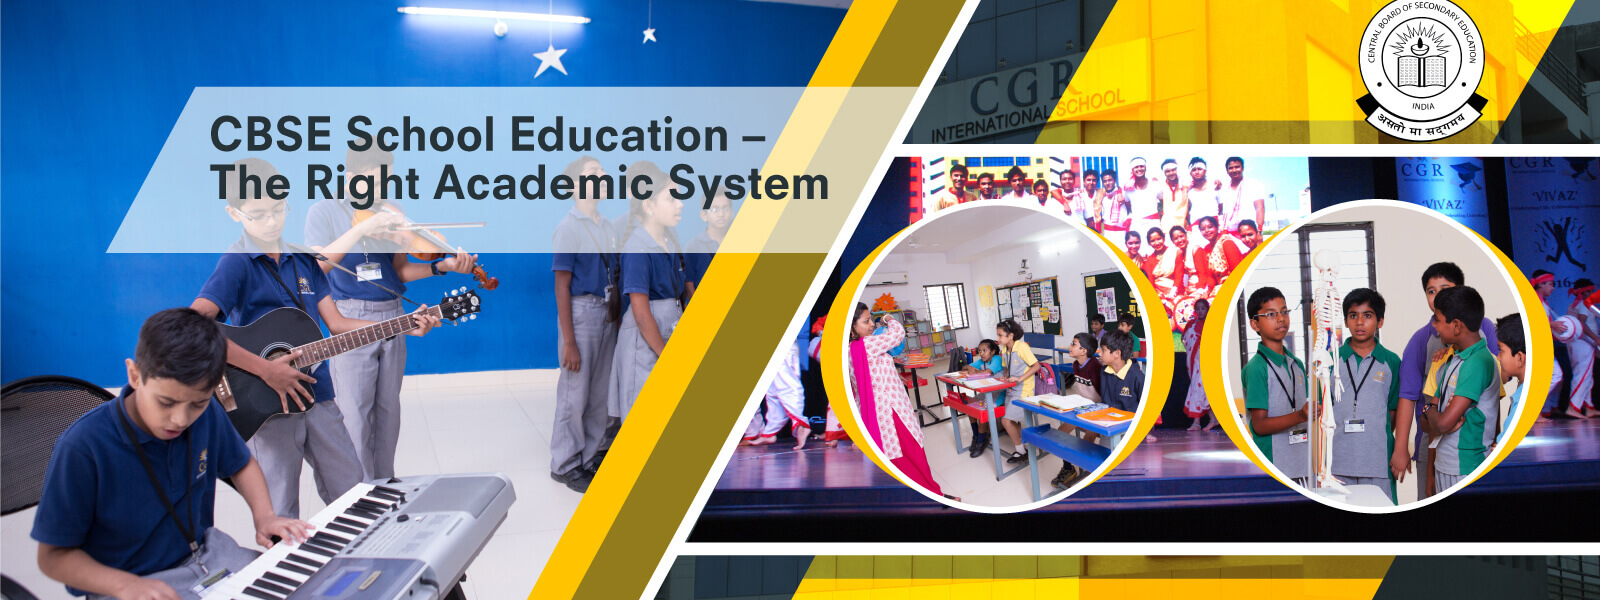 CBSE School Education – The Right Academic System